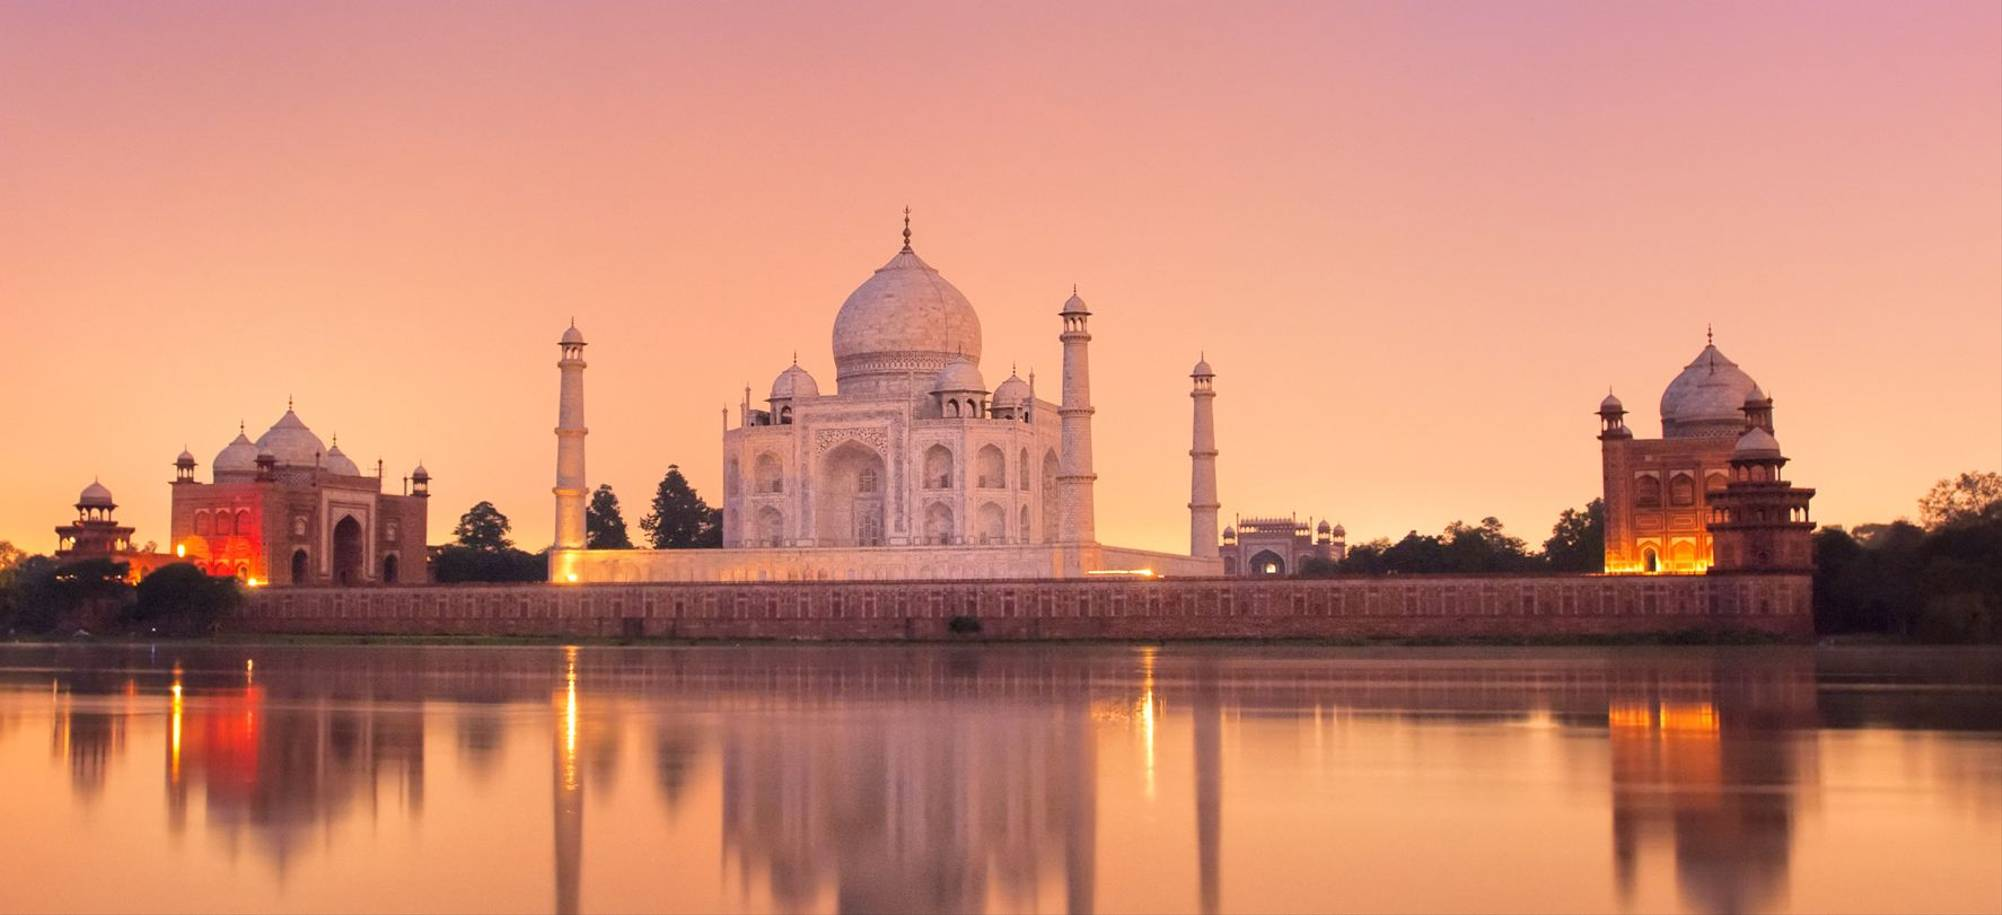 3 Day   Tour Day 3   Delhi   Agra, Taj Mahal   Itinerary Desktop